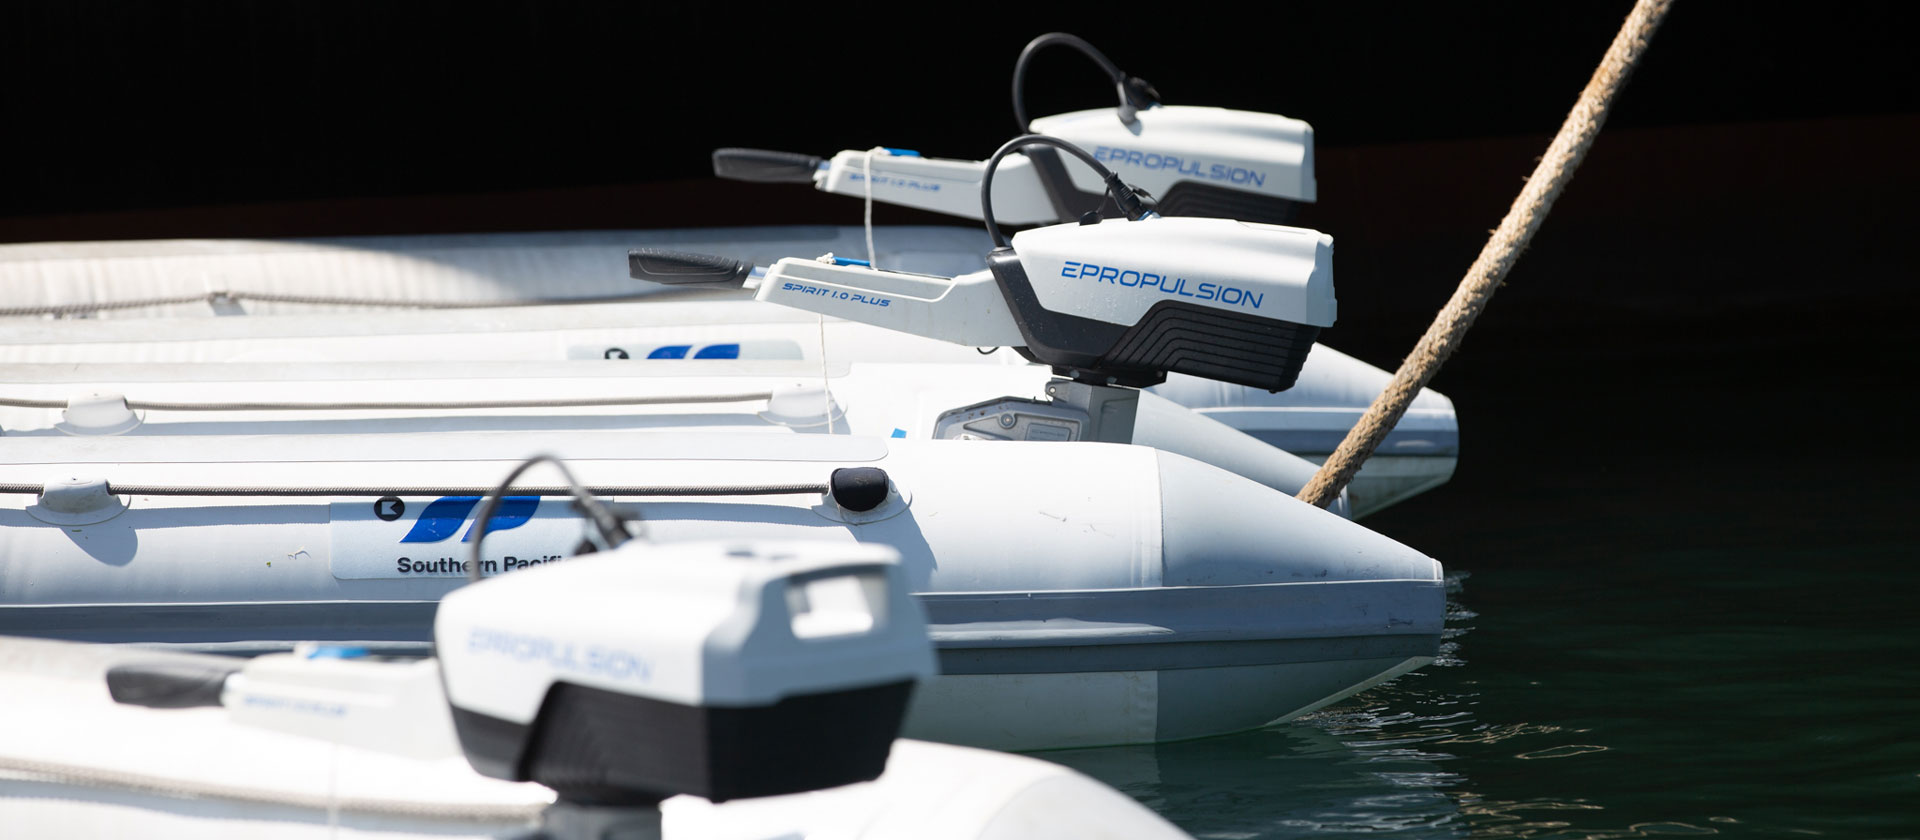 ePropulsion outboards power Sail GP tenders